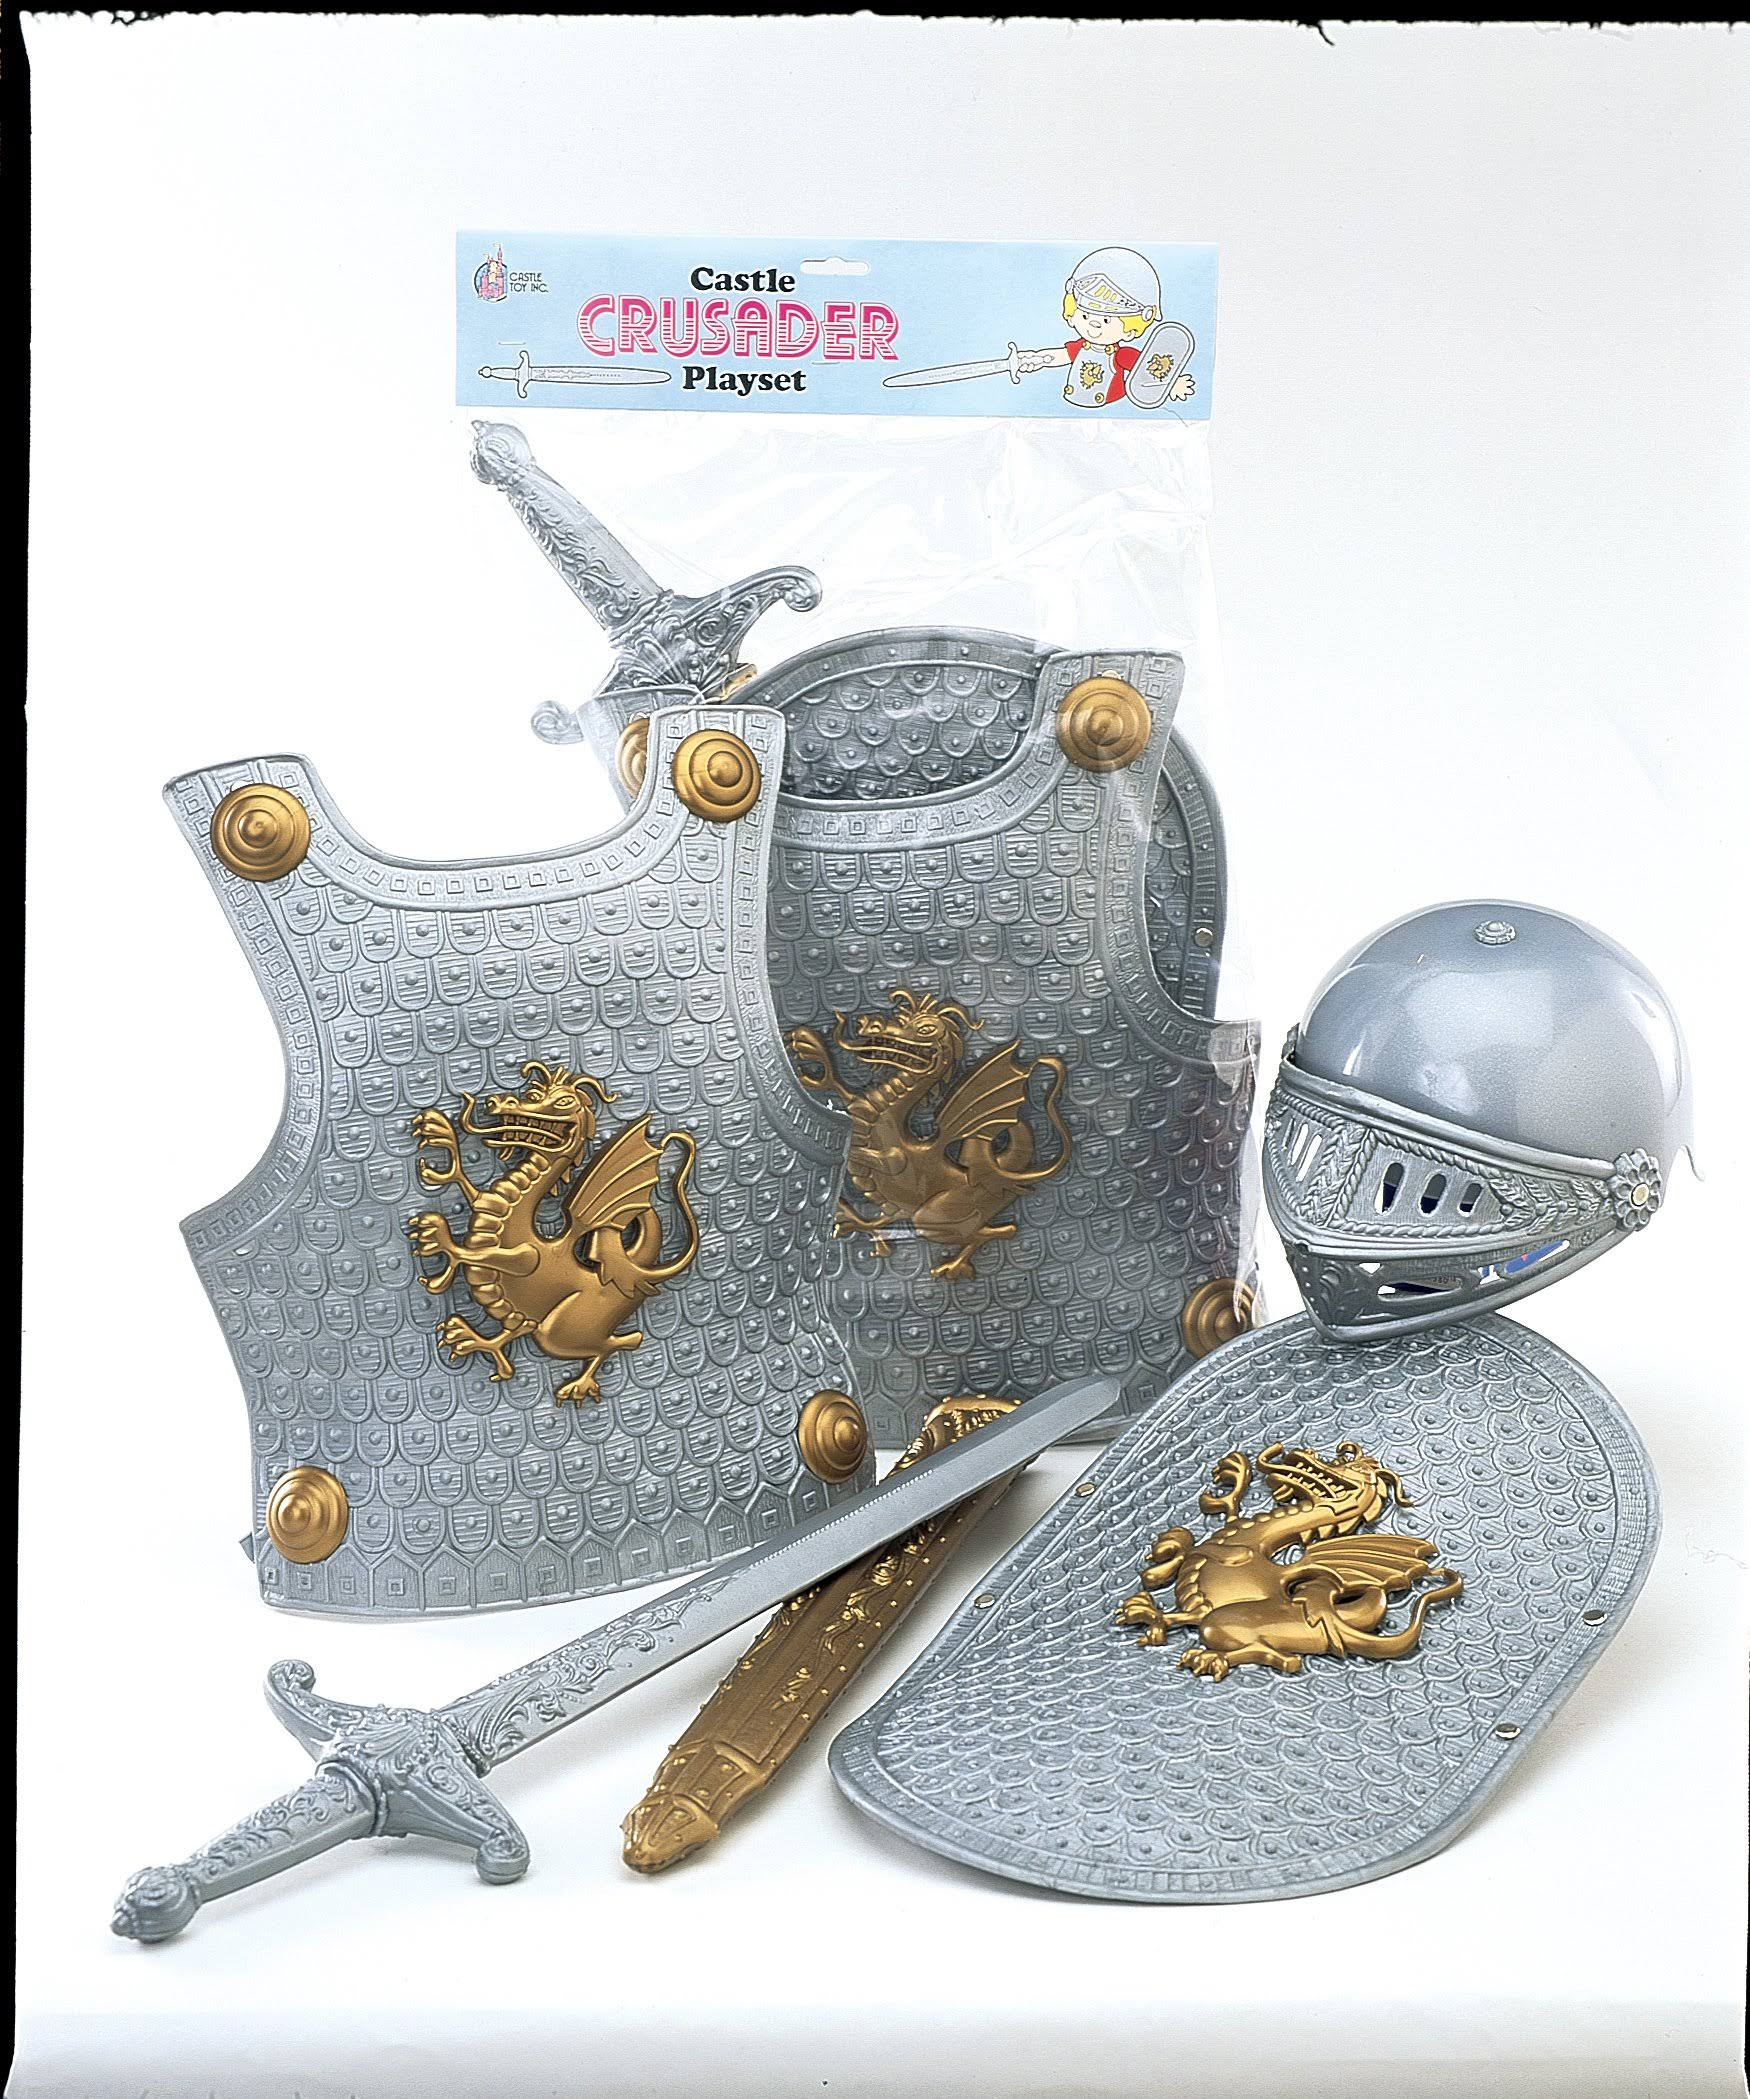 Small World Toys Imaginative Play Knight In Shining Armor